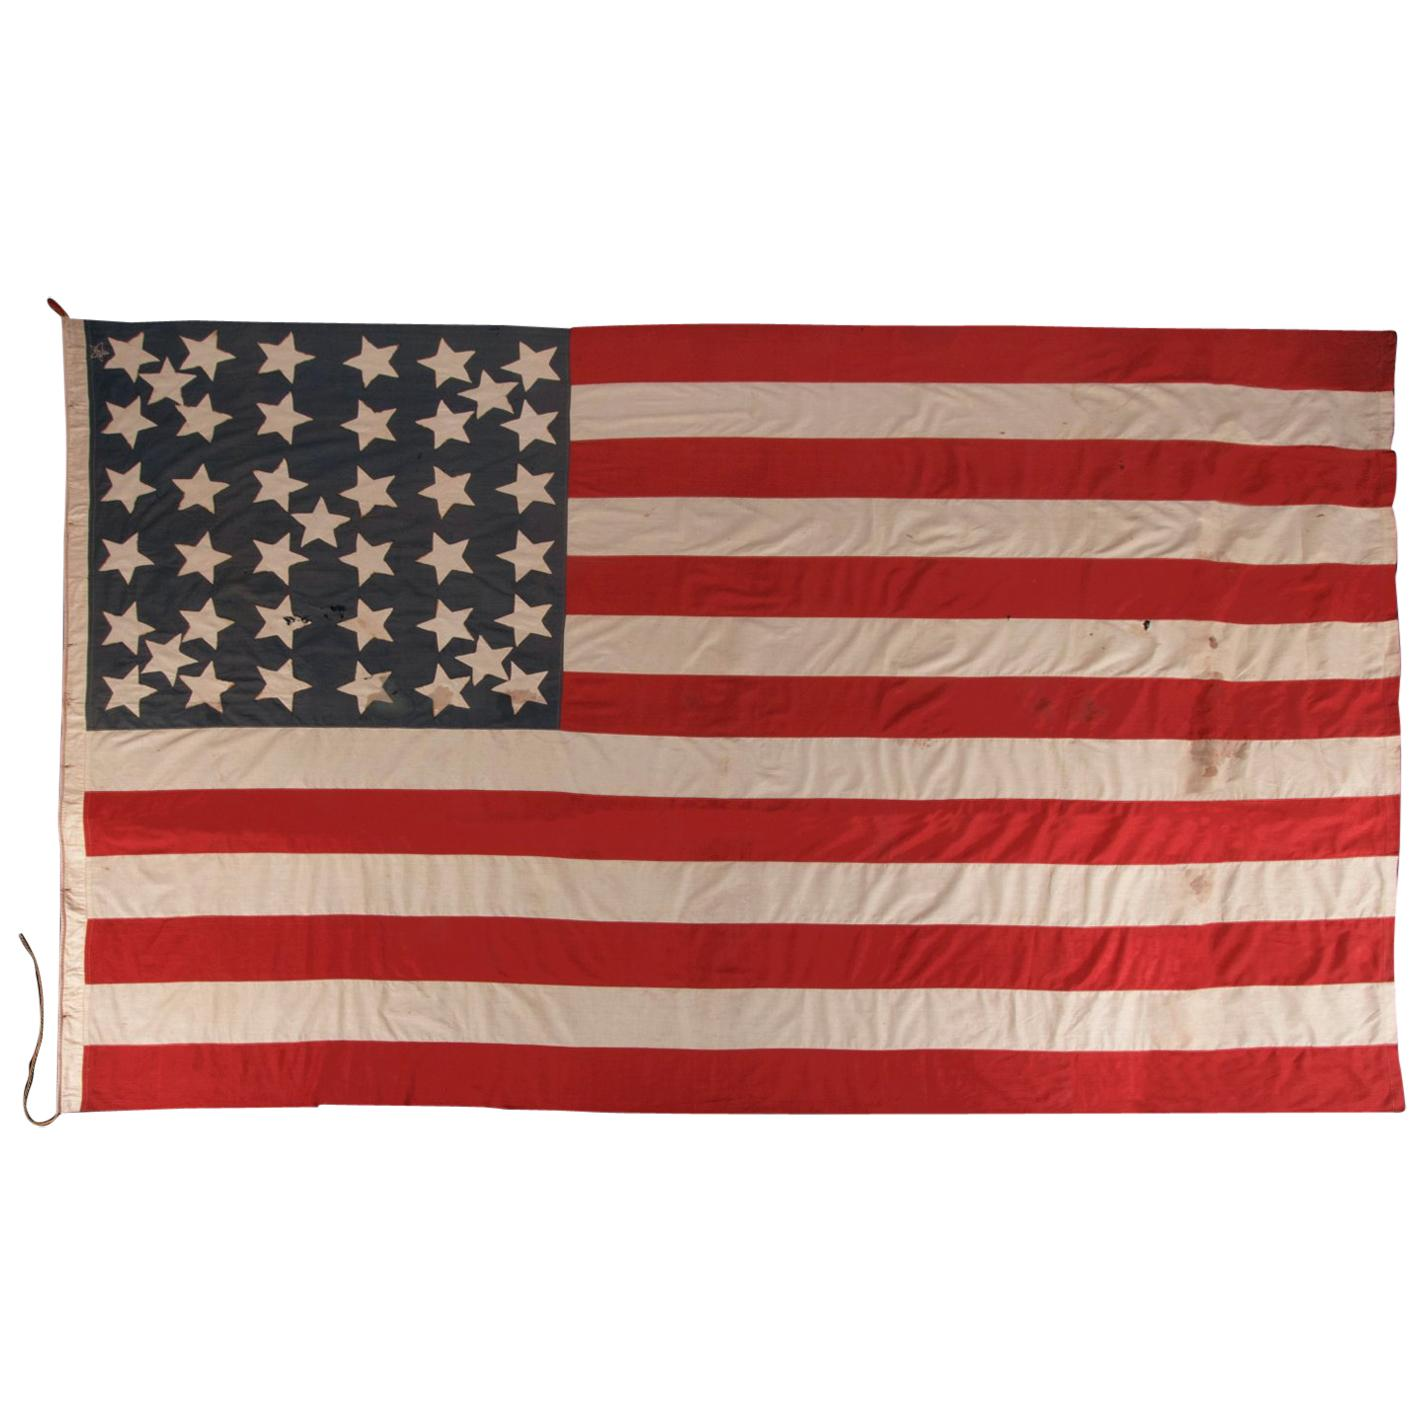 41 Stars In a Lineal Pattern With Offset Stars, Montana Statehood American Flag